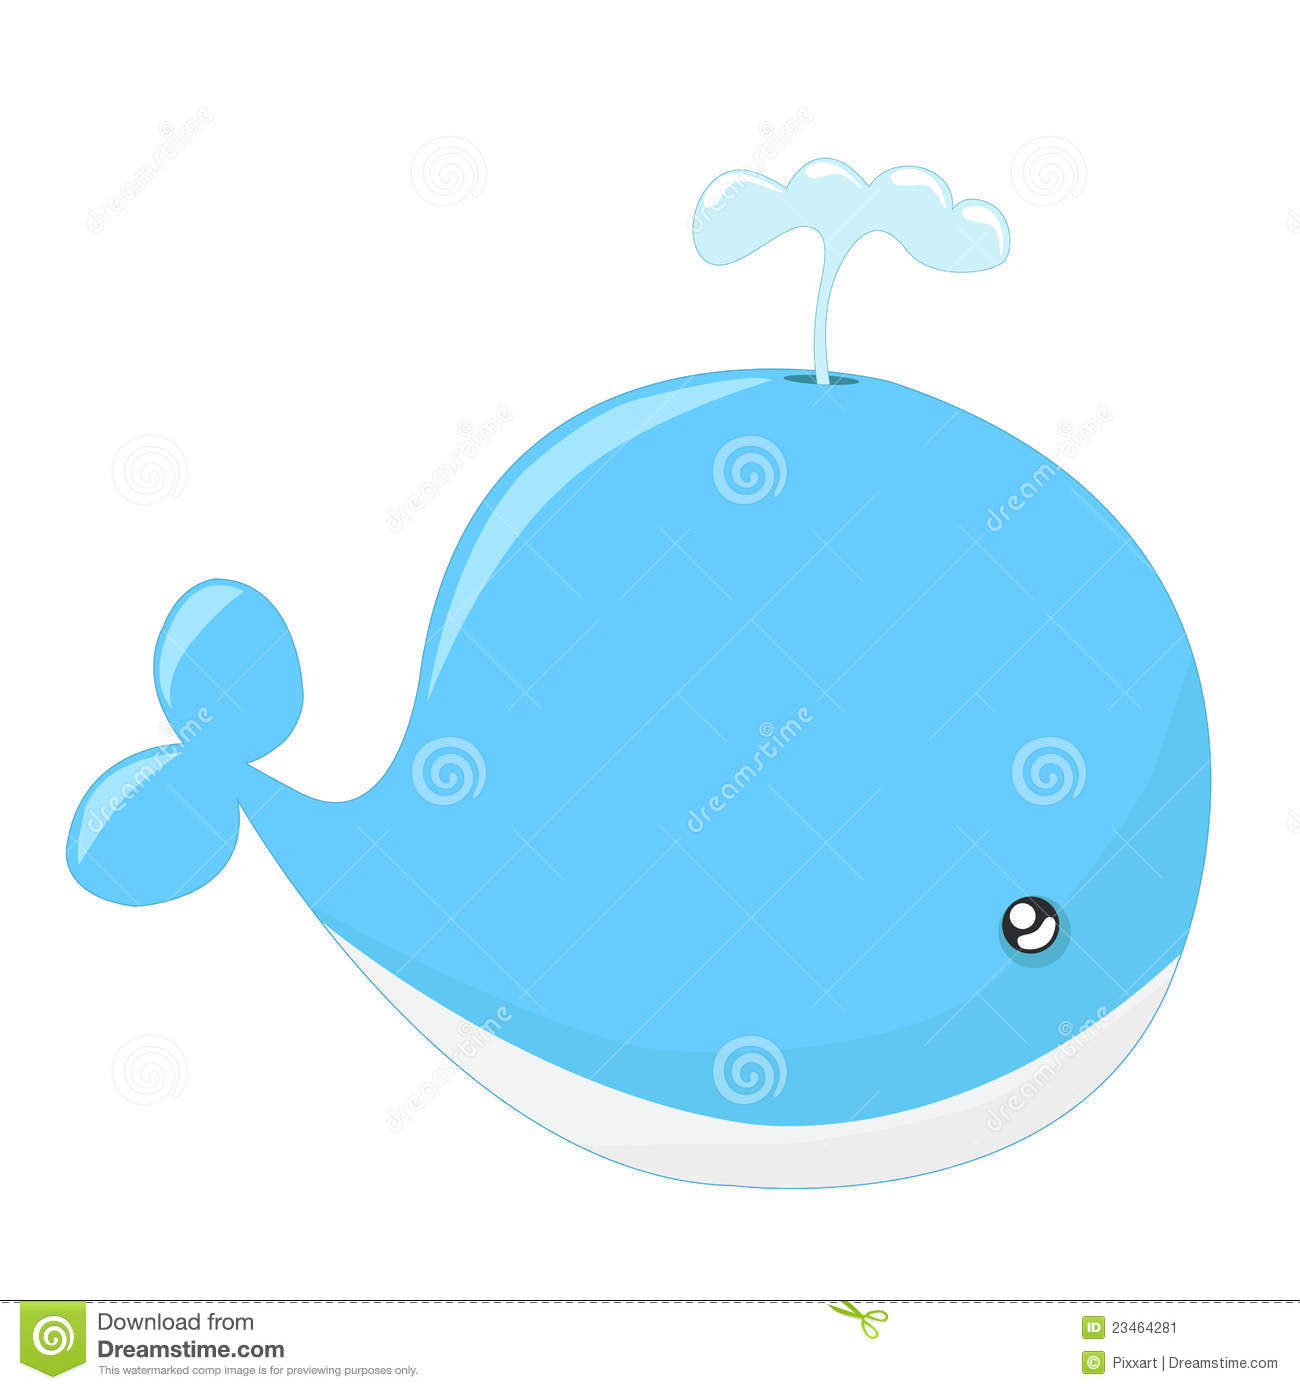 Cute whale in water cartoon isolated illustration stock photography - Cute Whale Cartoon Stock Image